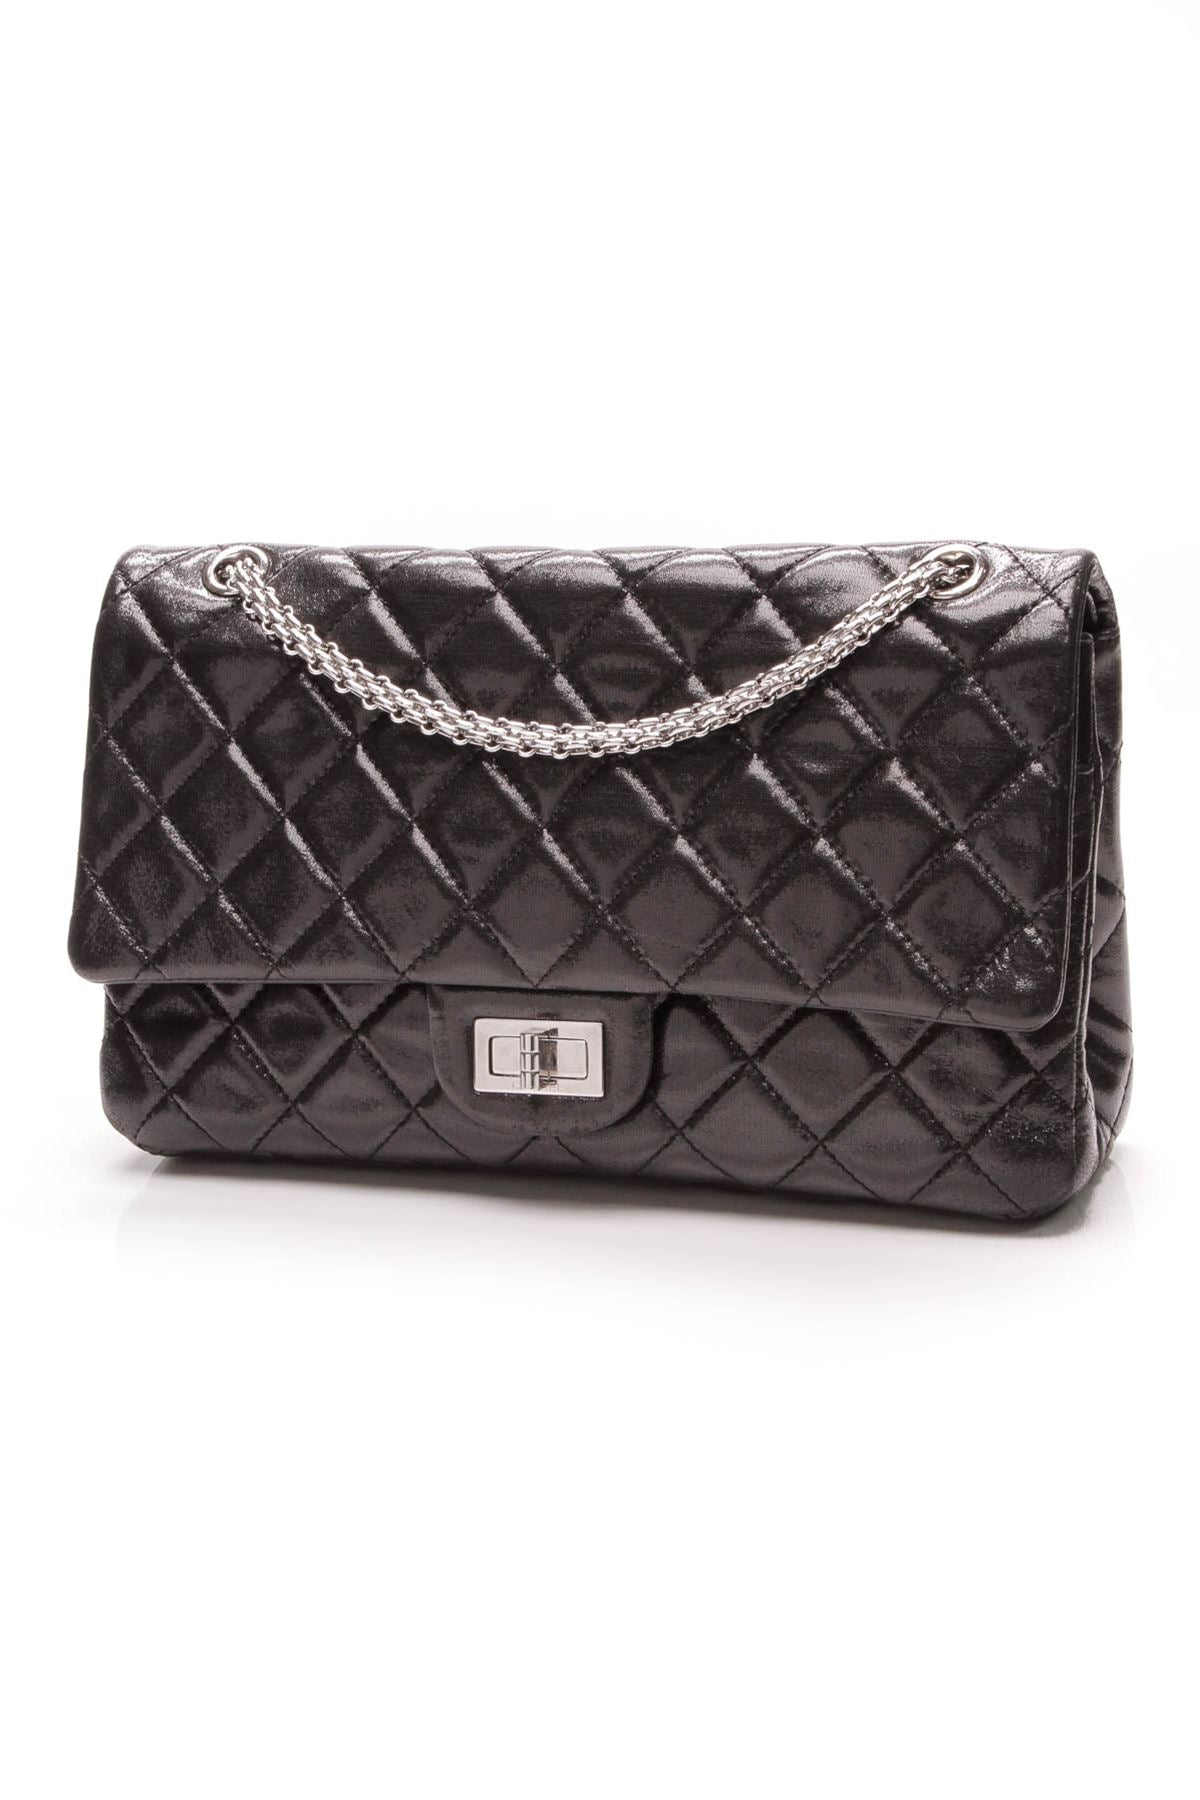 Chanel Classic Flap Bags – Couture USA bc437ec994b29